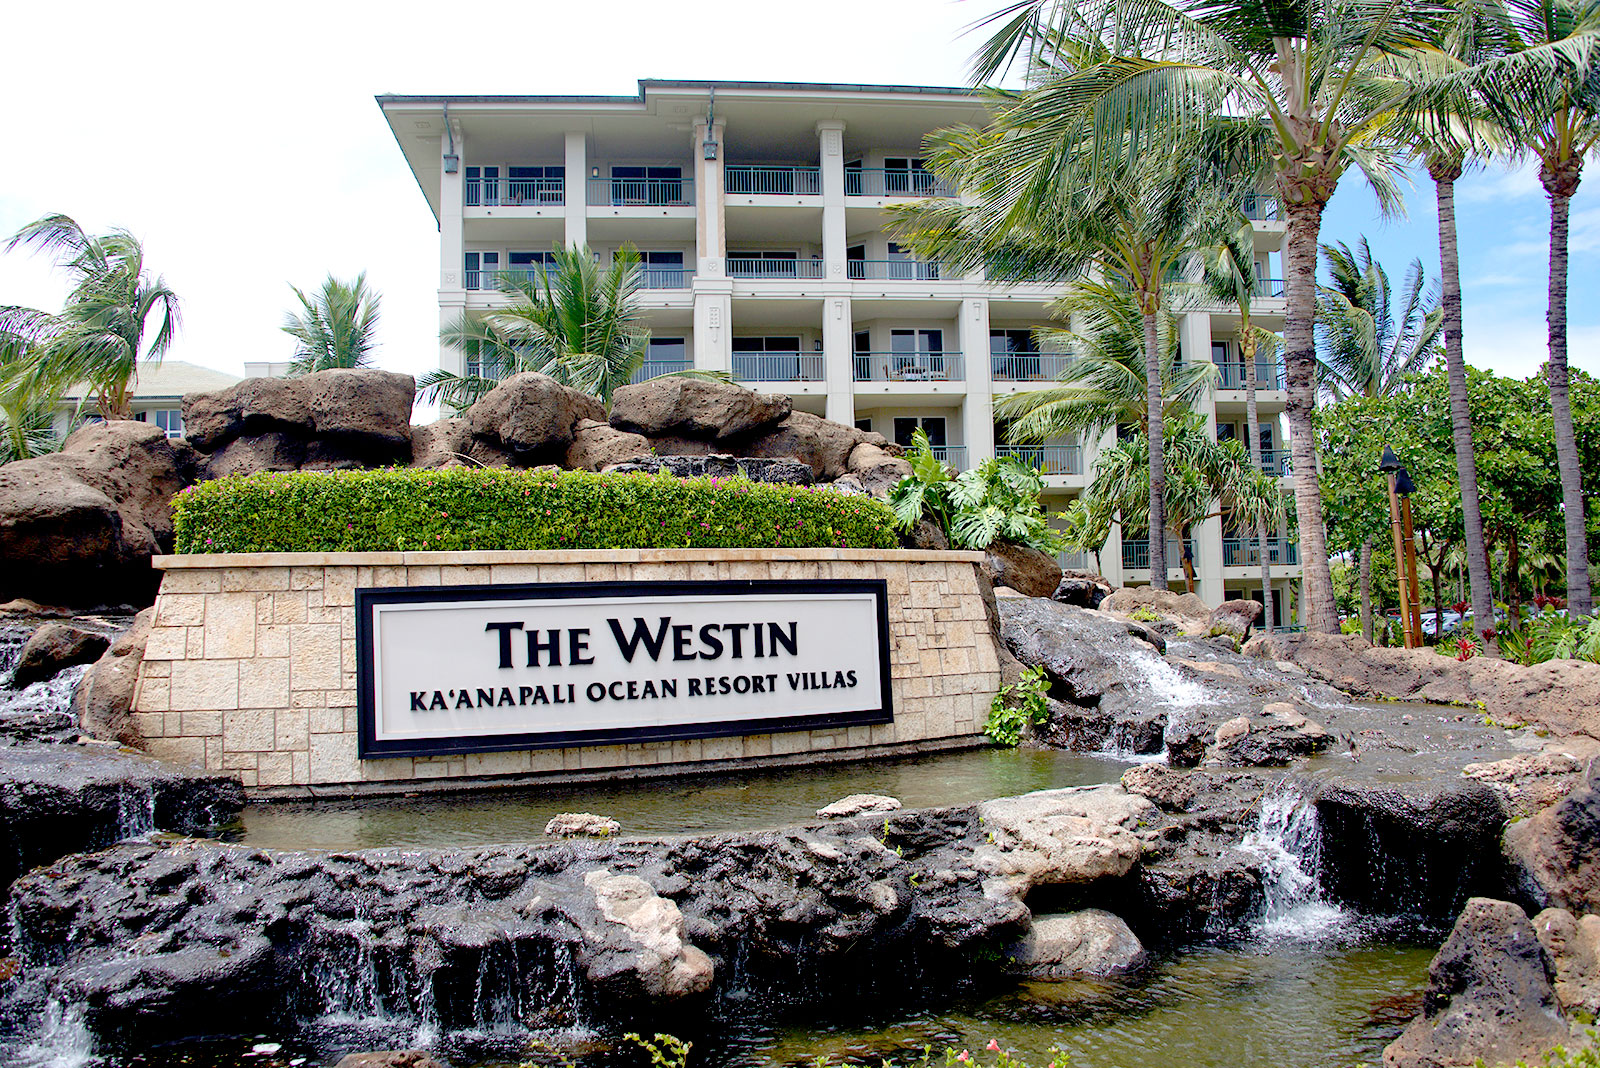 The Westin Kaanapali Ocean Resort Villas